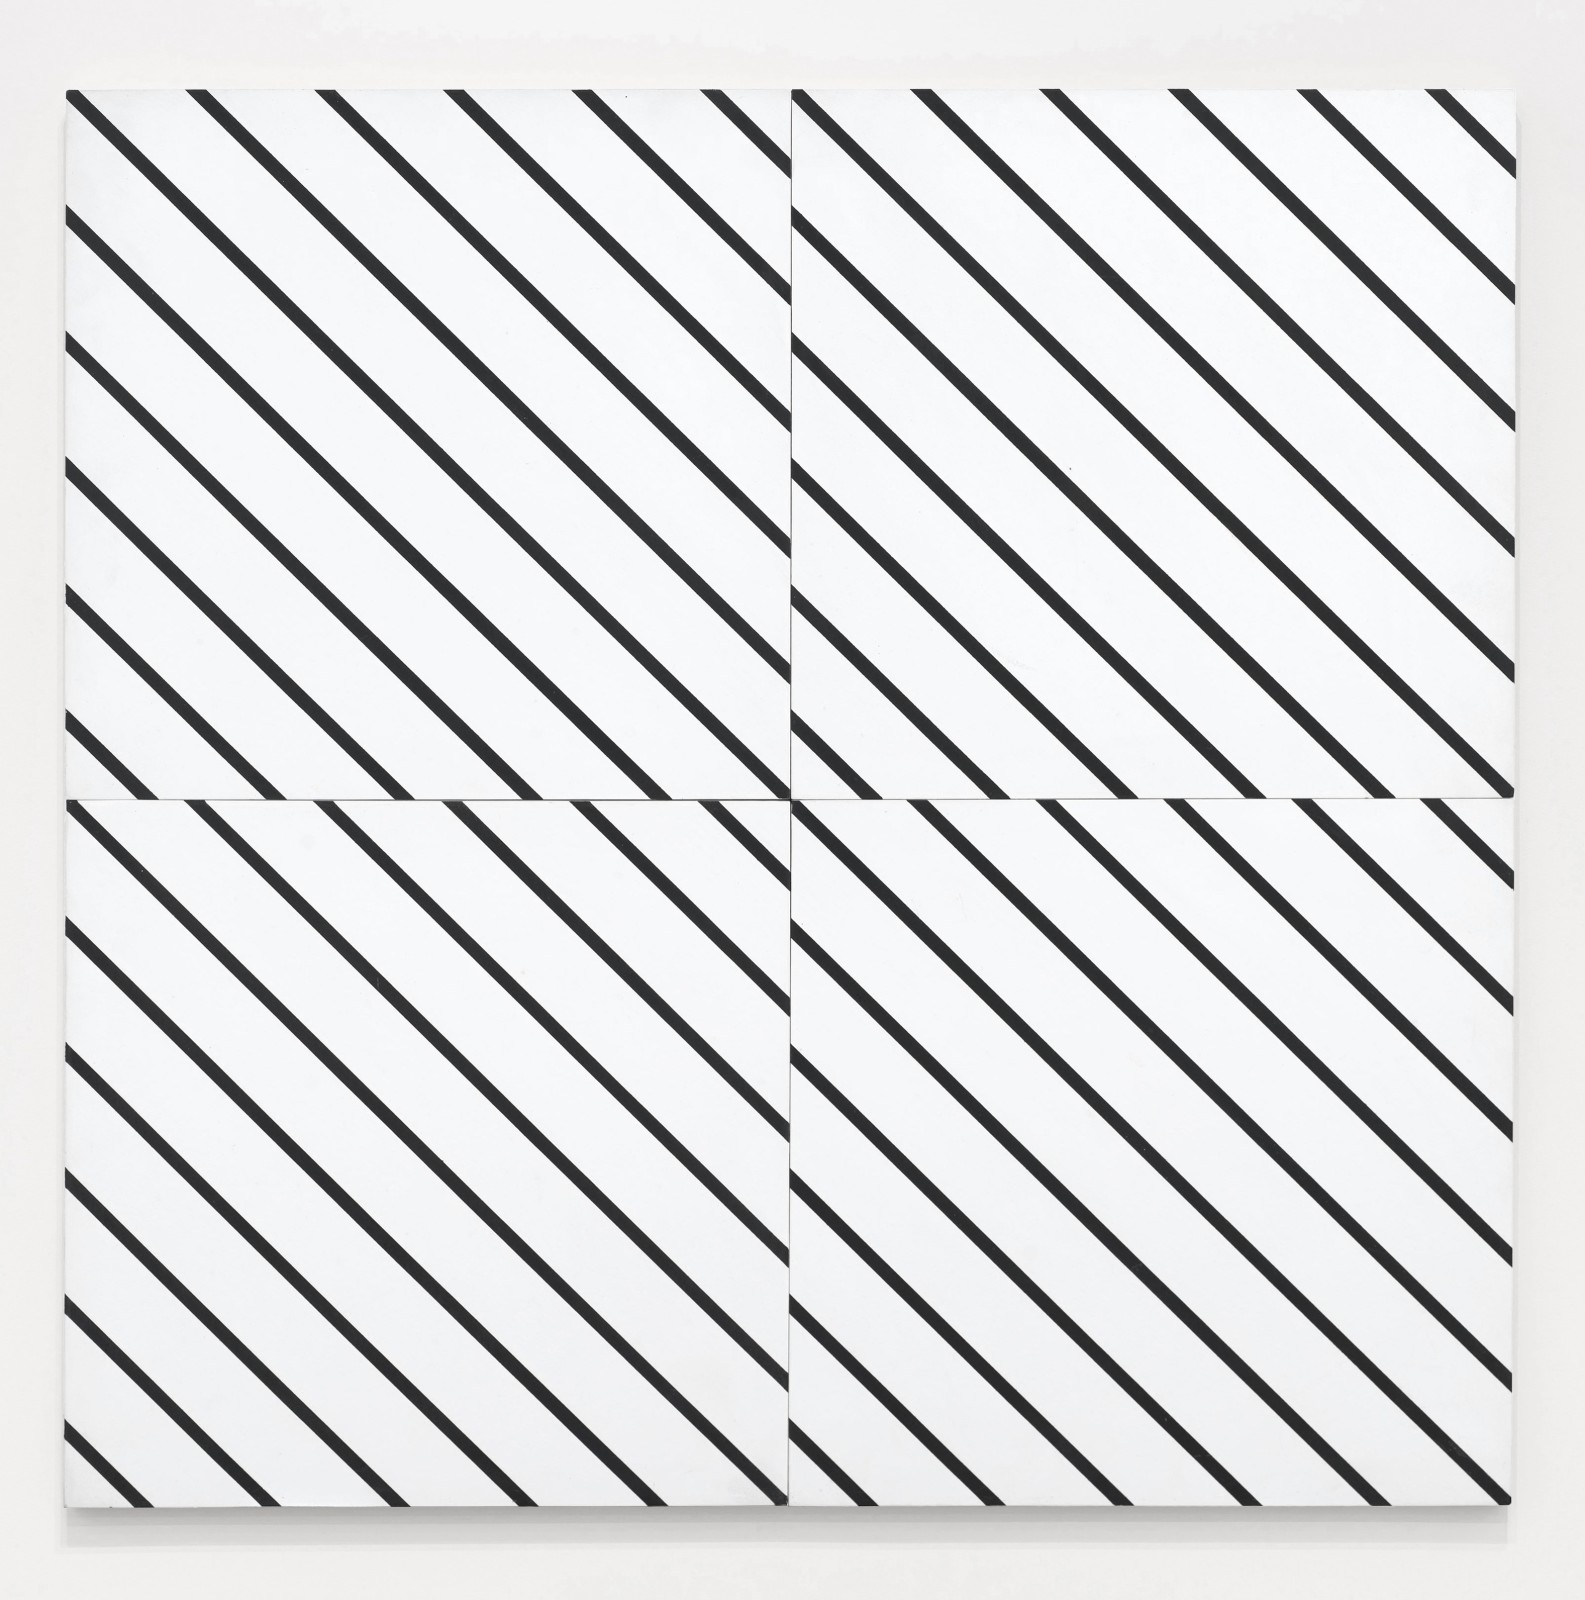 """<span class=""""link fancybox-details-link""""><a href=""""/artists/121-francois-morellet/works/10763/"""">View Detail Page</a></span><div class=""""artist""""><span class=""""artist""""><strong>FRANCOIS MORELLET</strong></span></div><div class=""""title""""><em>1 simple trame 45° coupée, décalée</em>, 1973</div><div class=""""signed_and_dated"""">Signed, titled, dated with archive number on reverse</div><div class=""""medium"""">Oil on four panels attached as one</div><div class=""""dimensions"""">80 x 80 cm<br /> 31 ½ x 31 ½ inches </div>"""